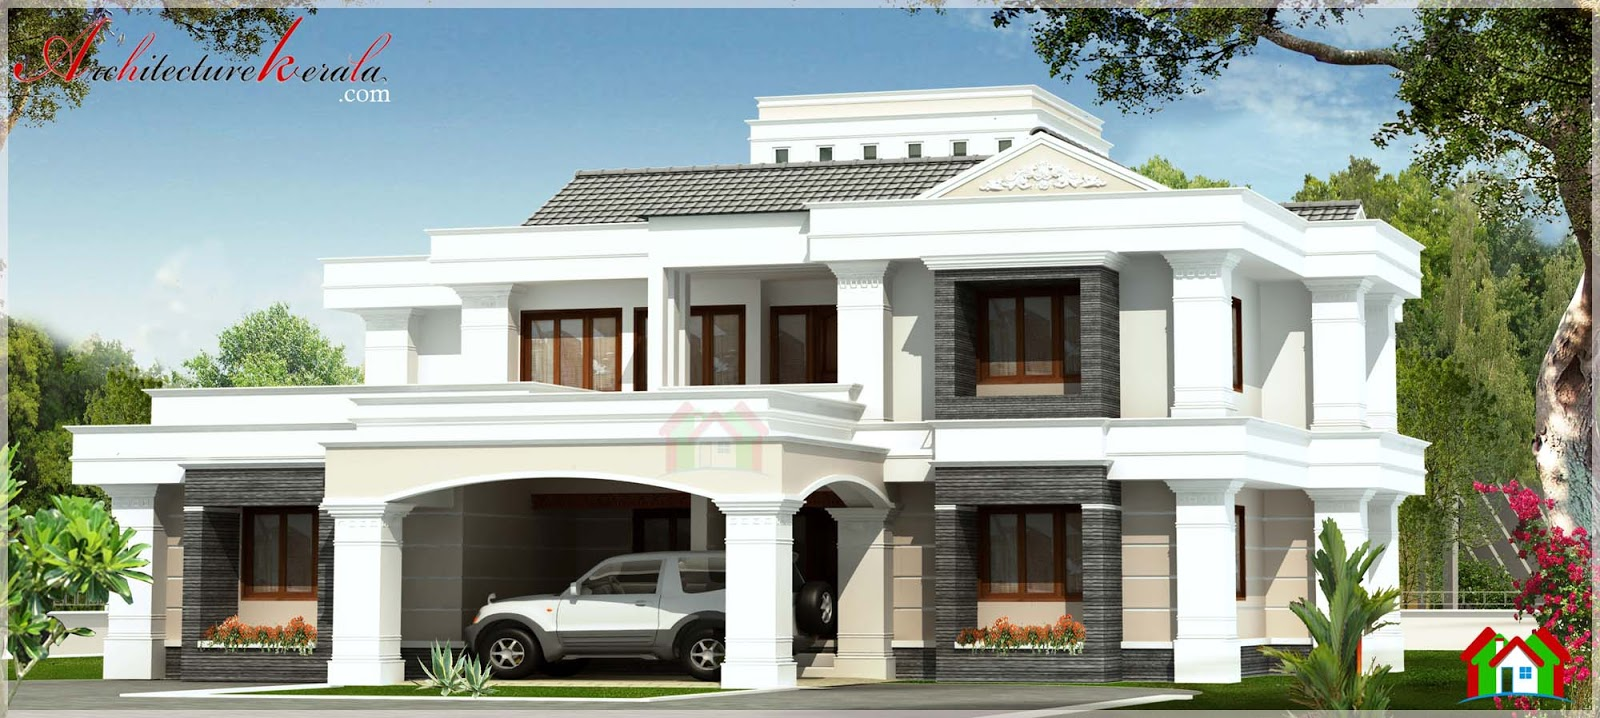 Contemporary style kerala house elevation architecture Contemporary style house